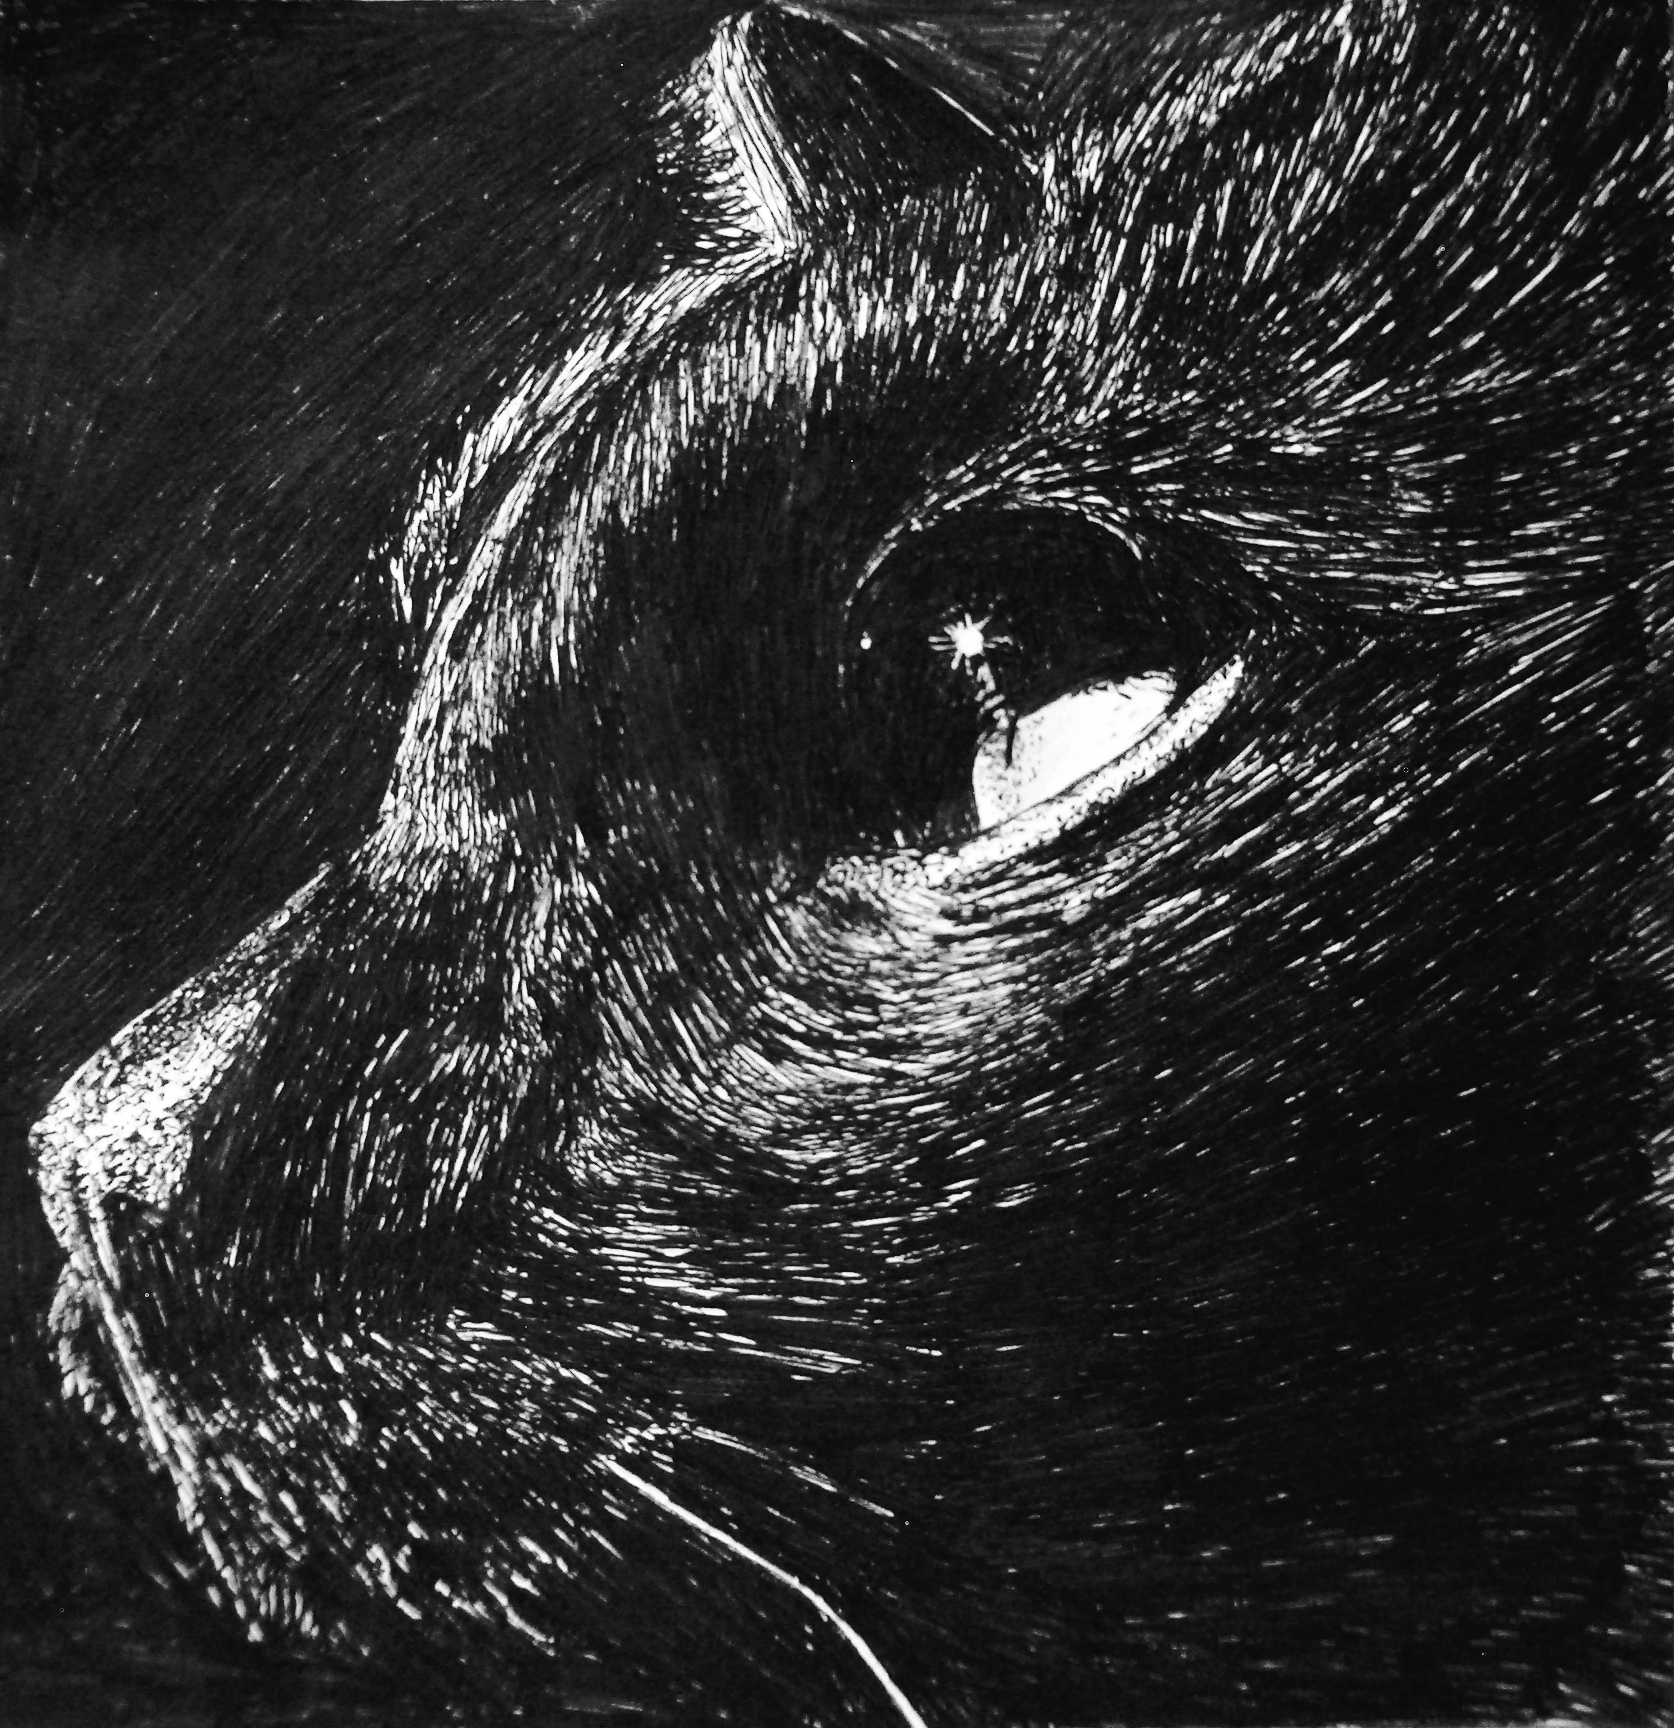 Black Cat by Bolbec